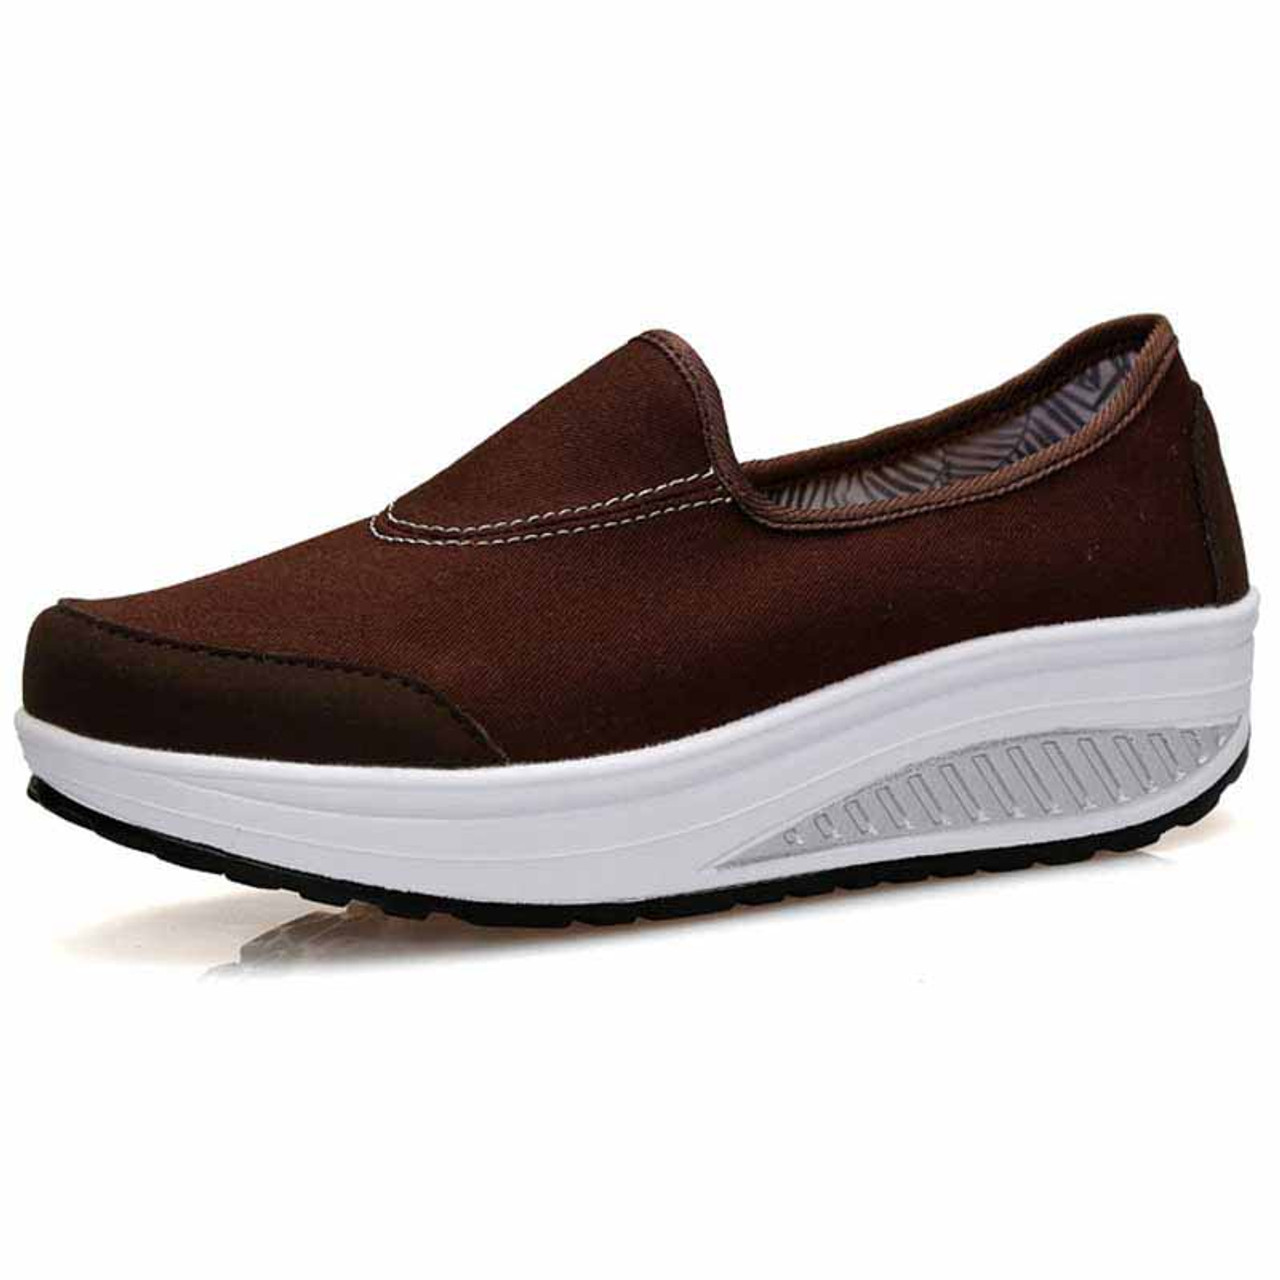 6108aa13787798 Brown canvas slip on rocker bottom shoe sneaker | Womens rocker ...